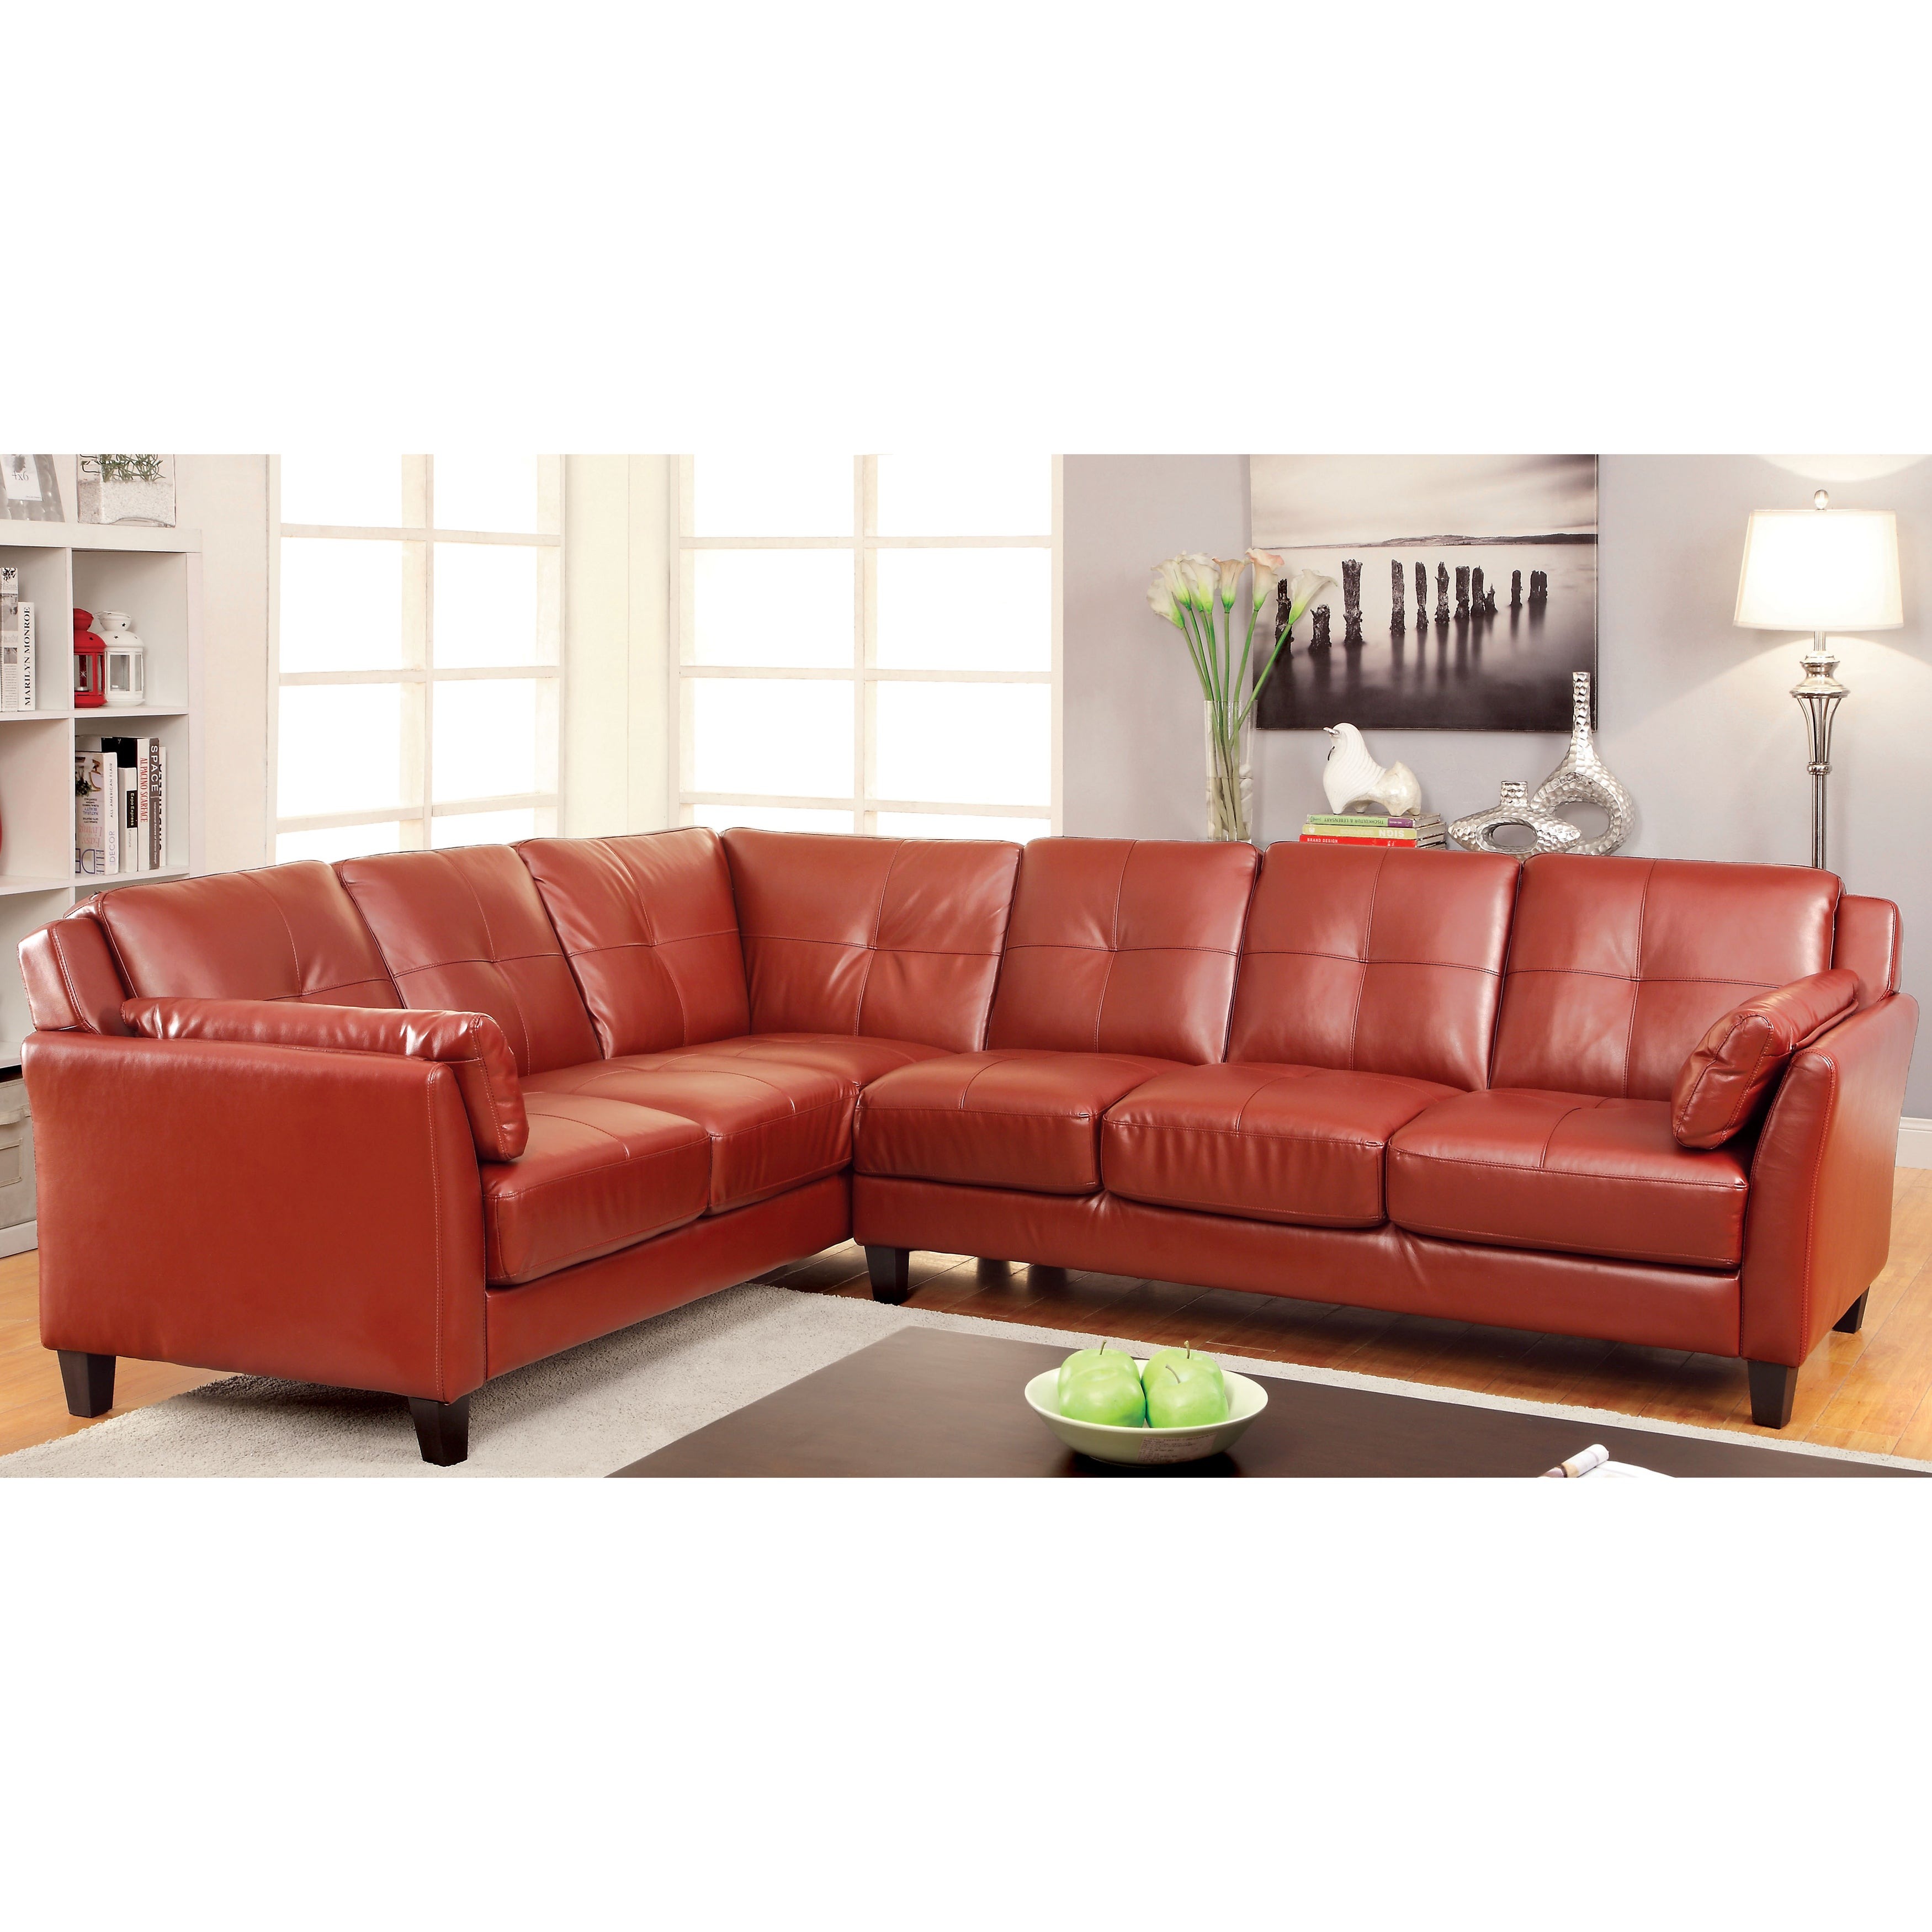 Furniture of America Pierson Double Stitched Leatherette ...